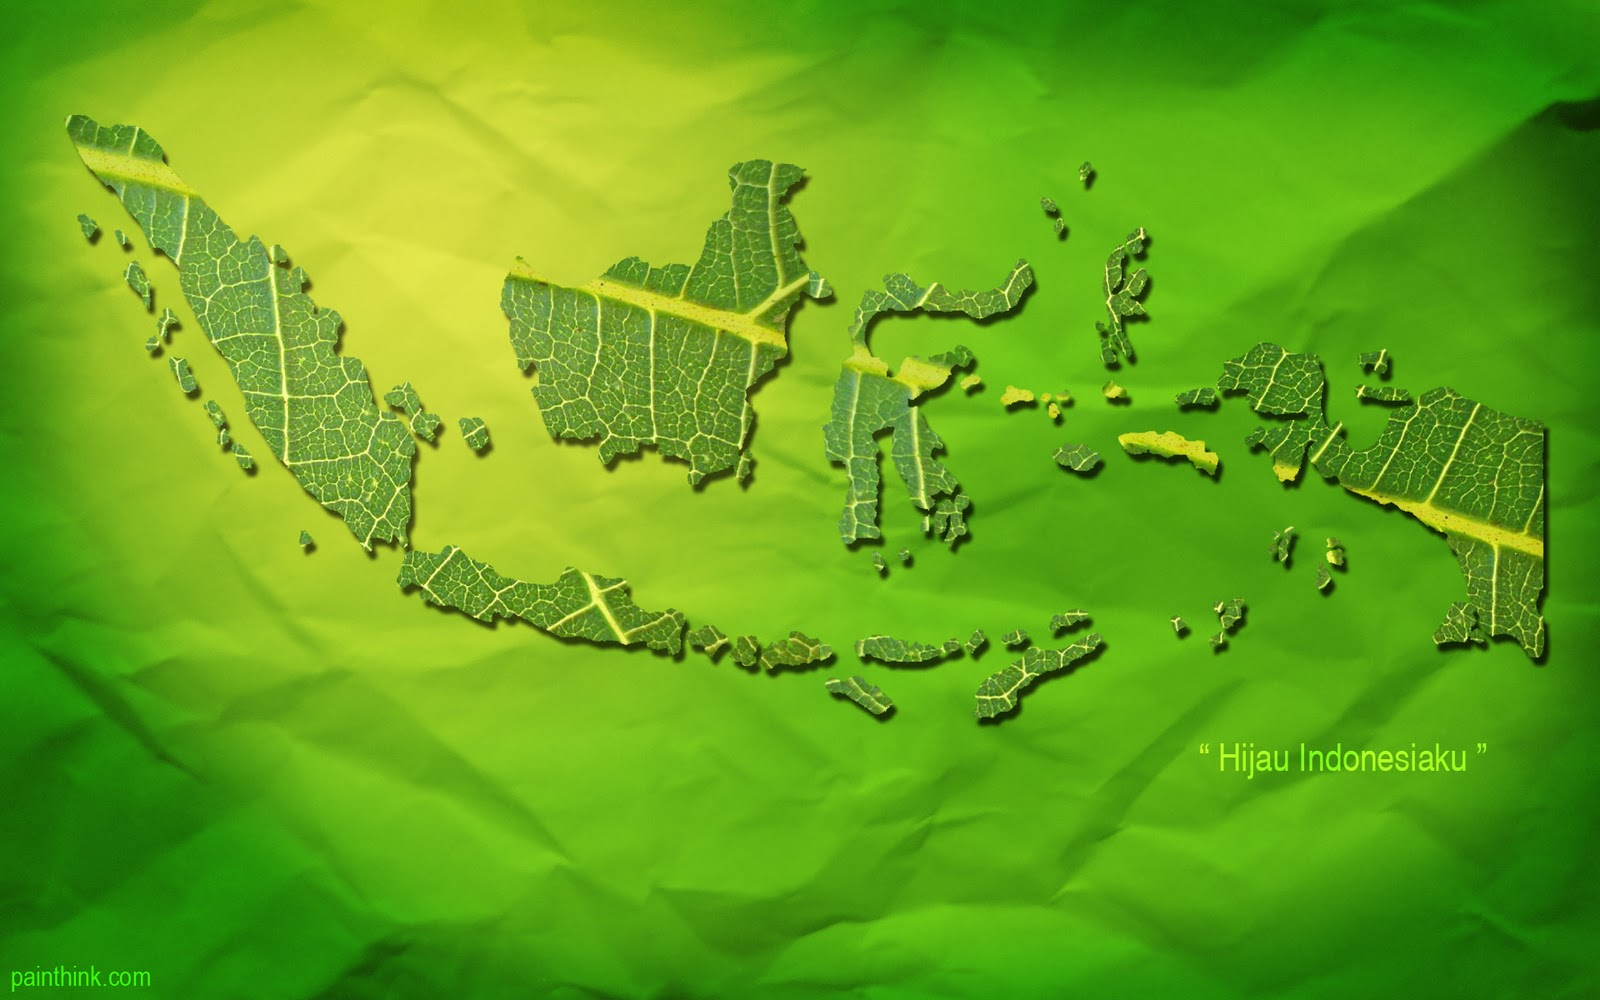 wallpaper peta indonesia daun 1600x1000